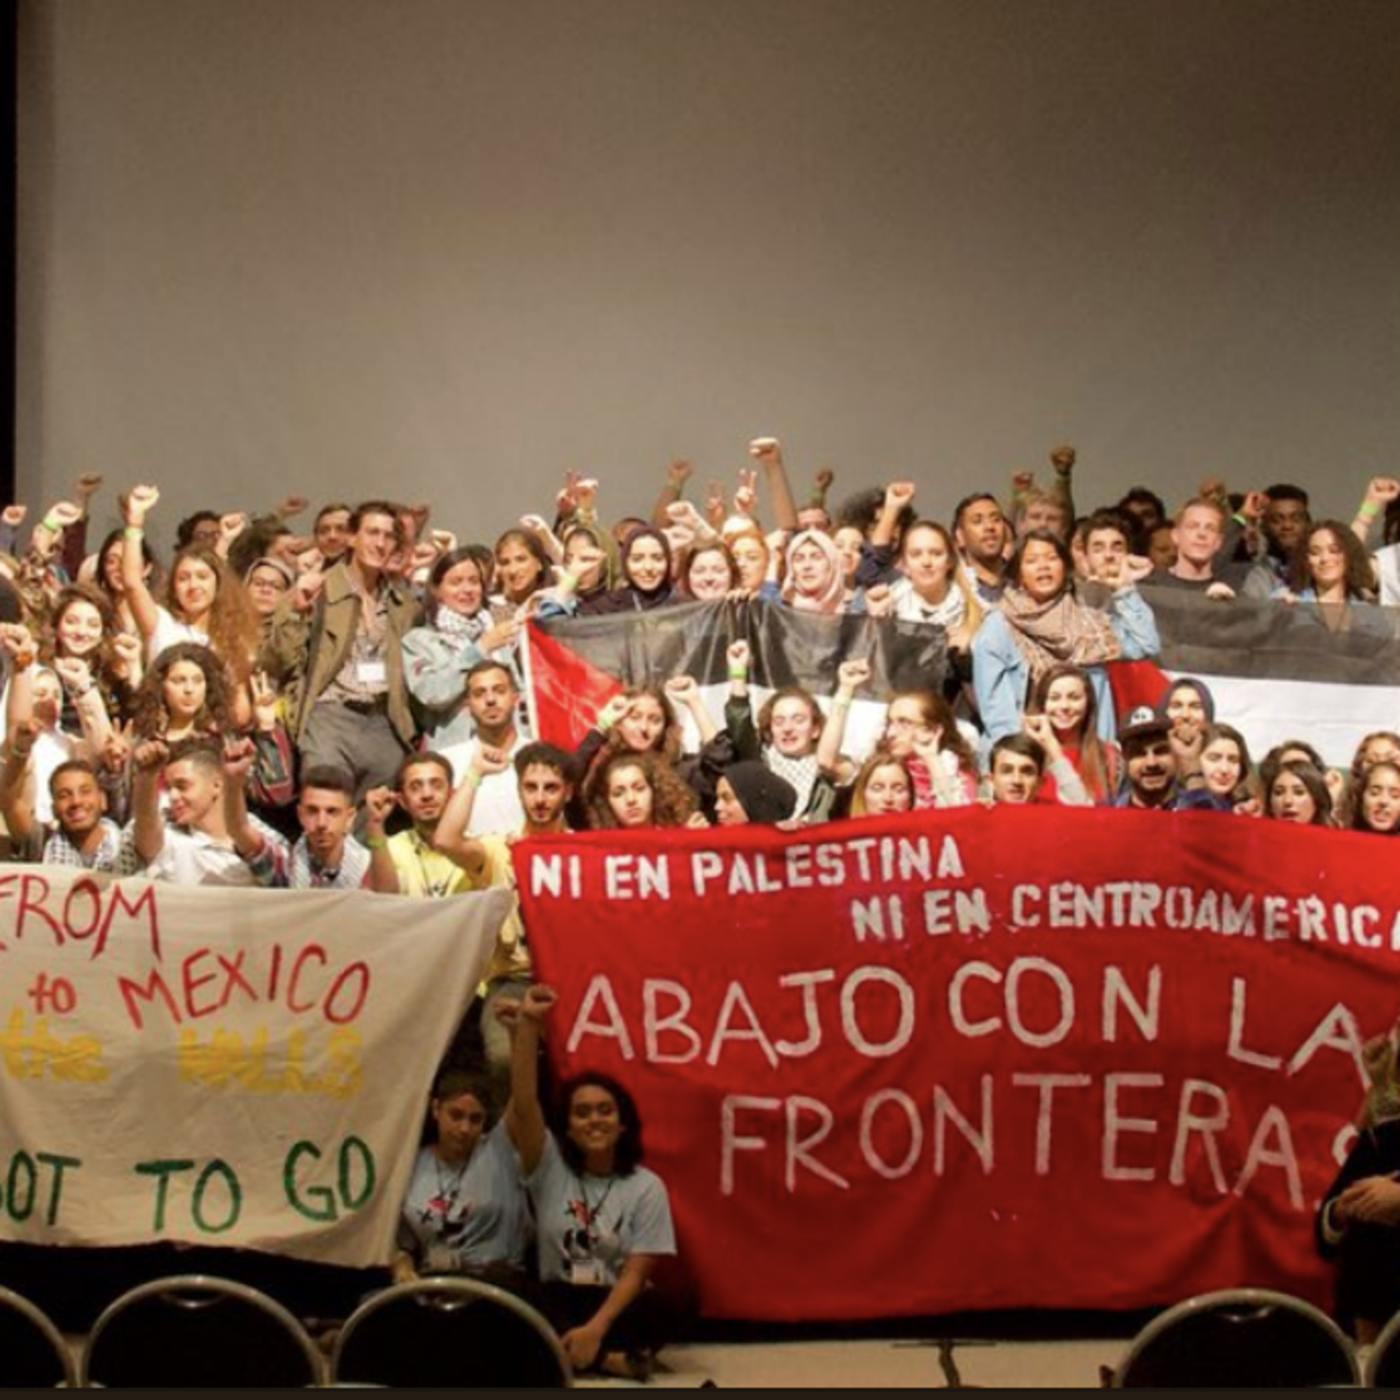 Listen: LA's Israel lobby fails to ban conference on Palestinian rights